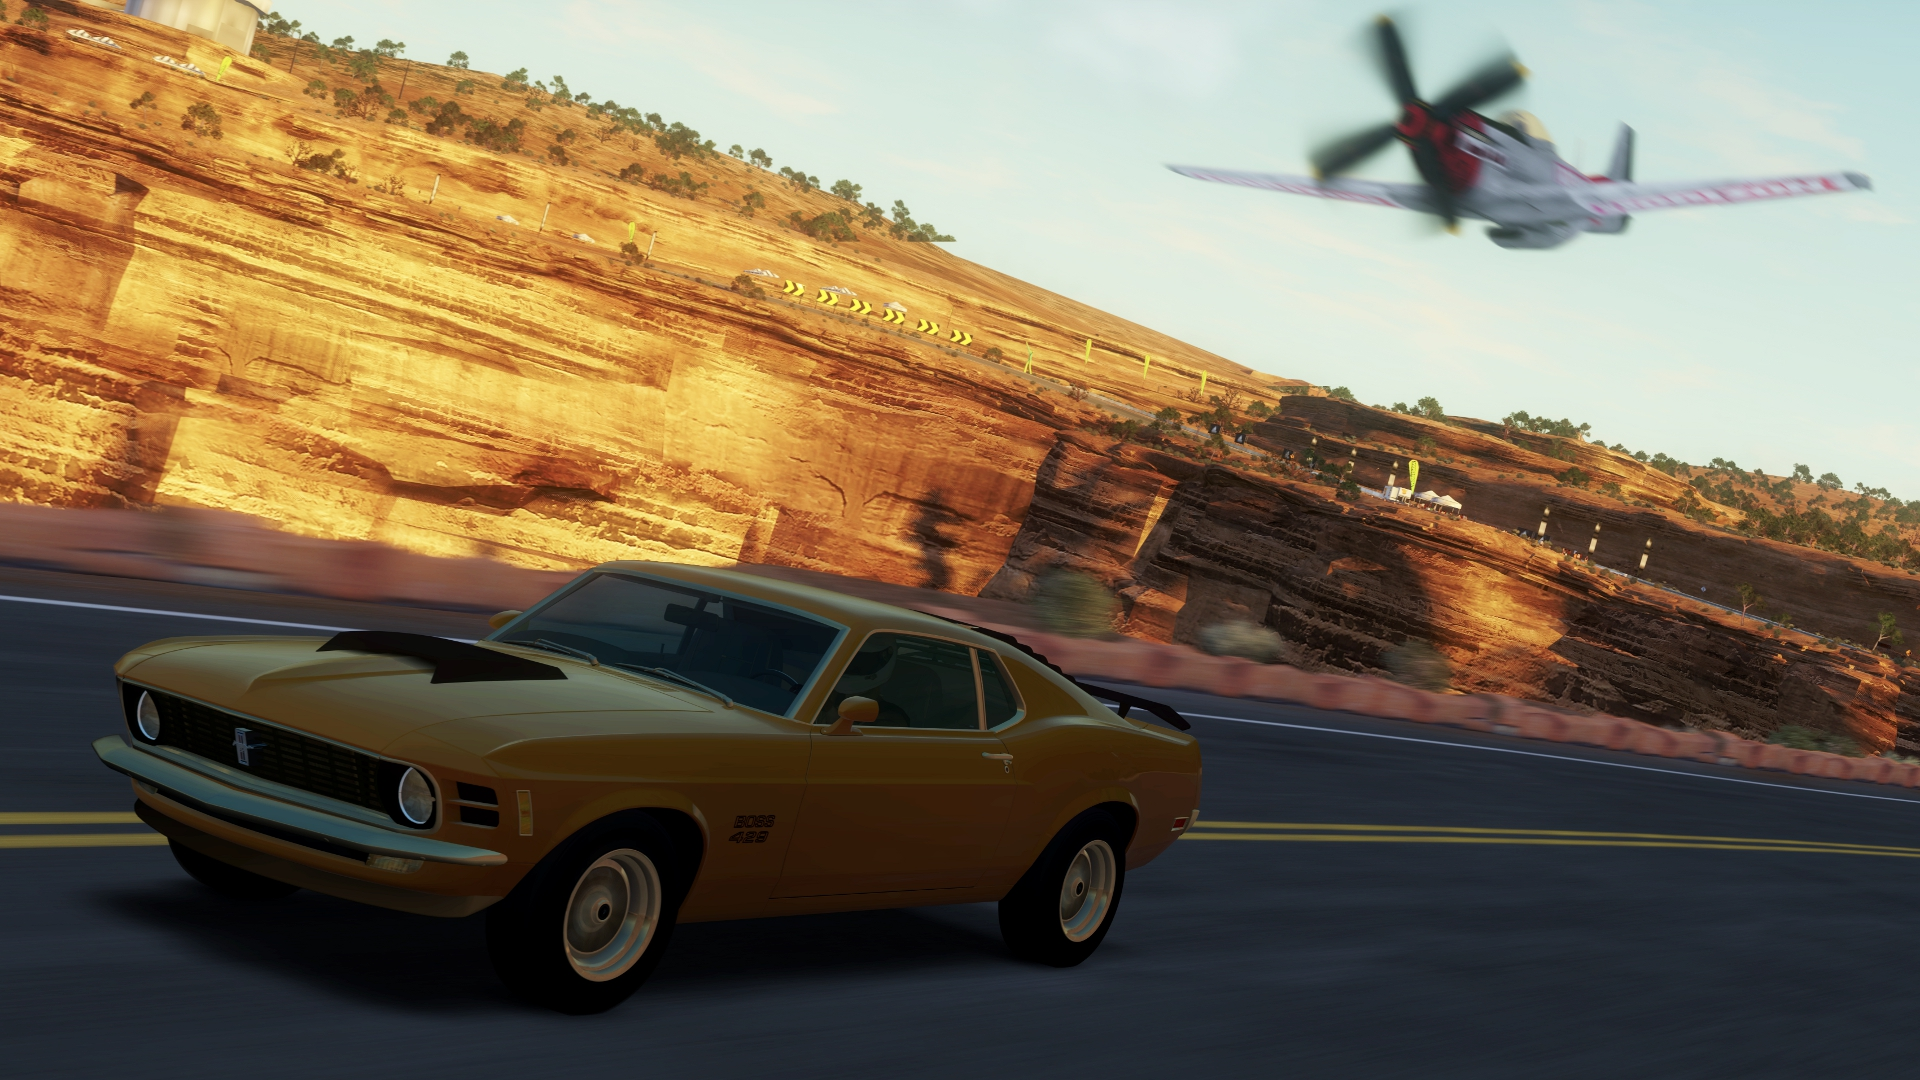 Forza Horizon action shot